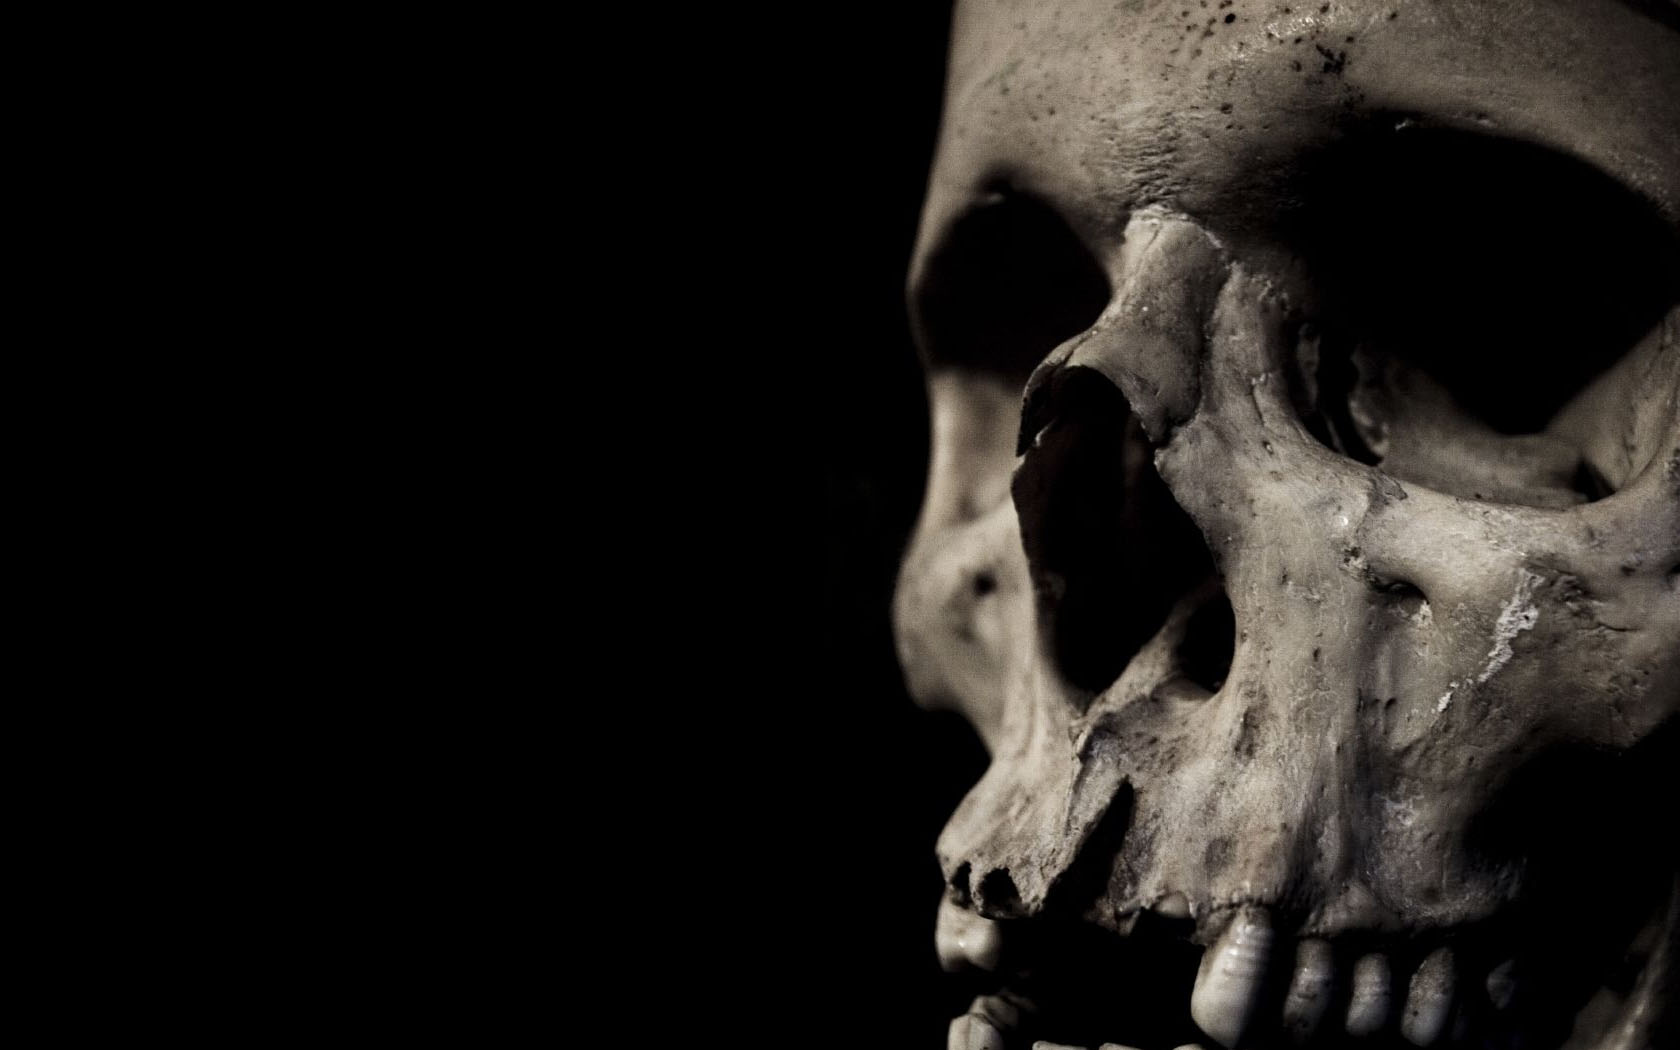 Download Artistic Skulls wallpaper skull close up 1680x1050